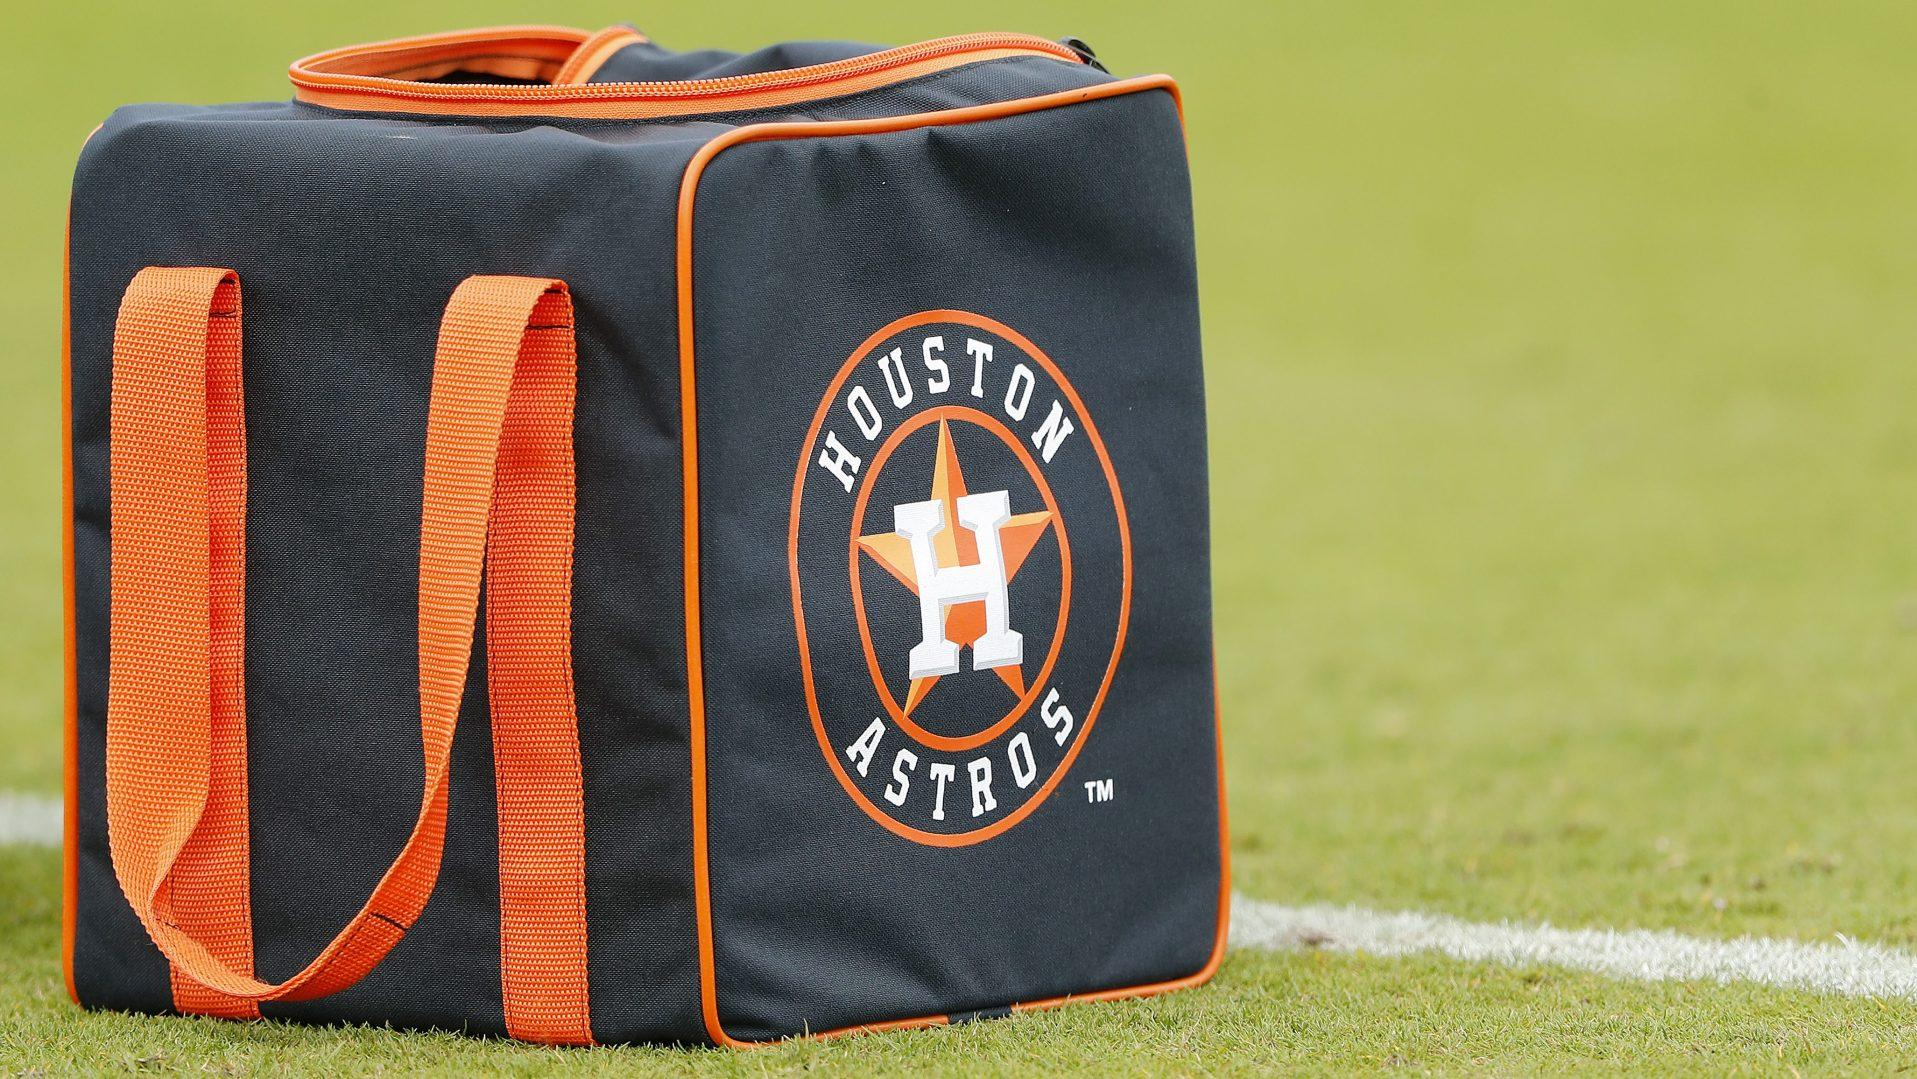 Astros greeted with boos in first spring training game